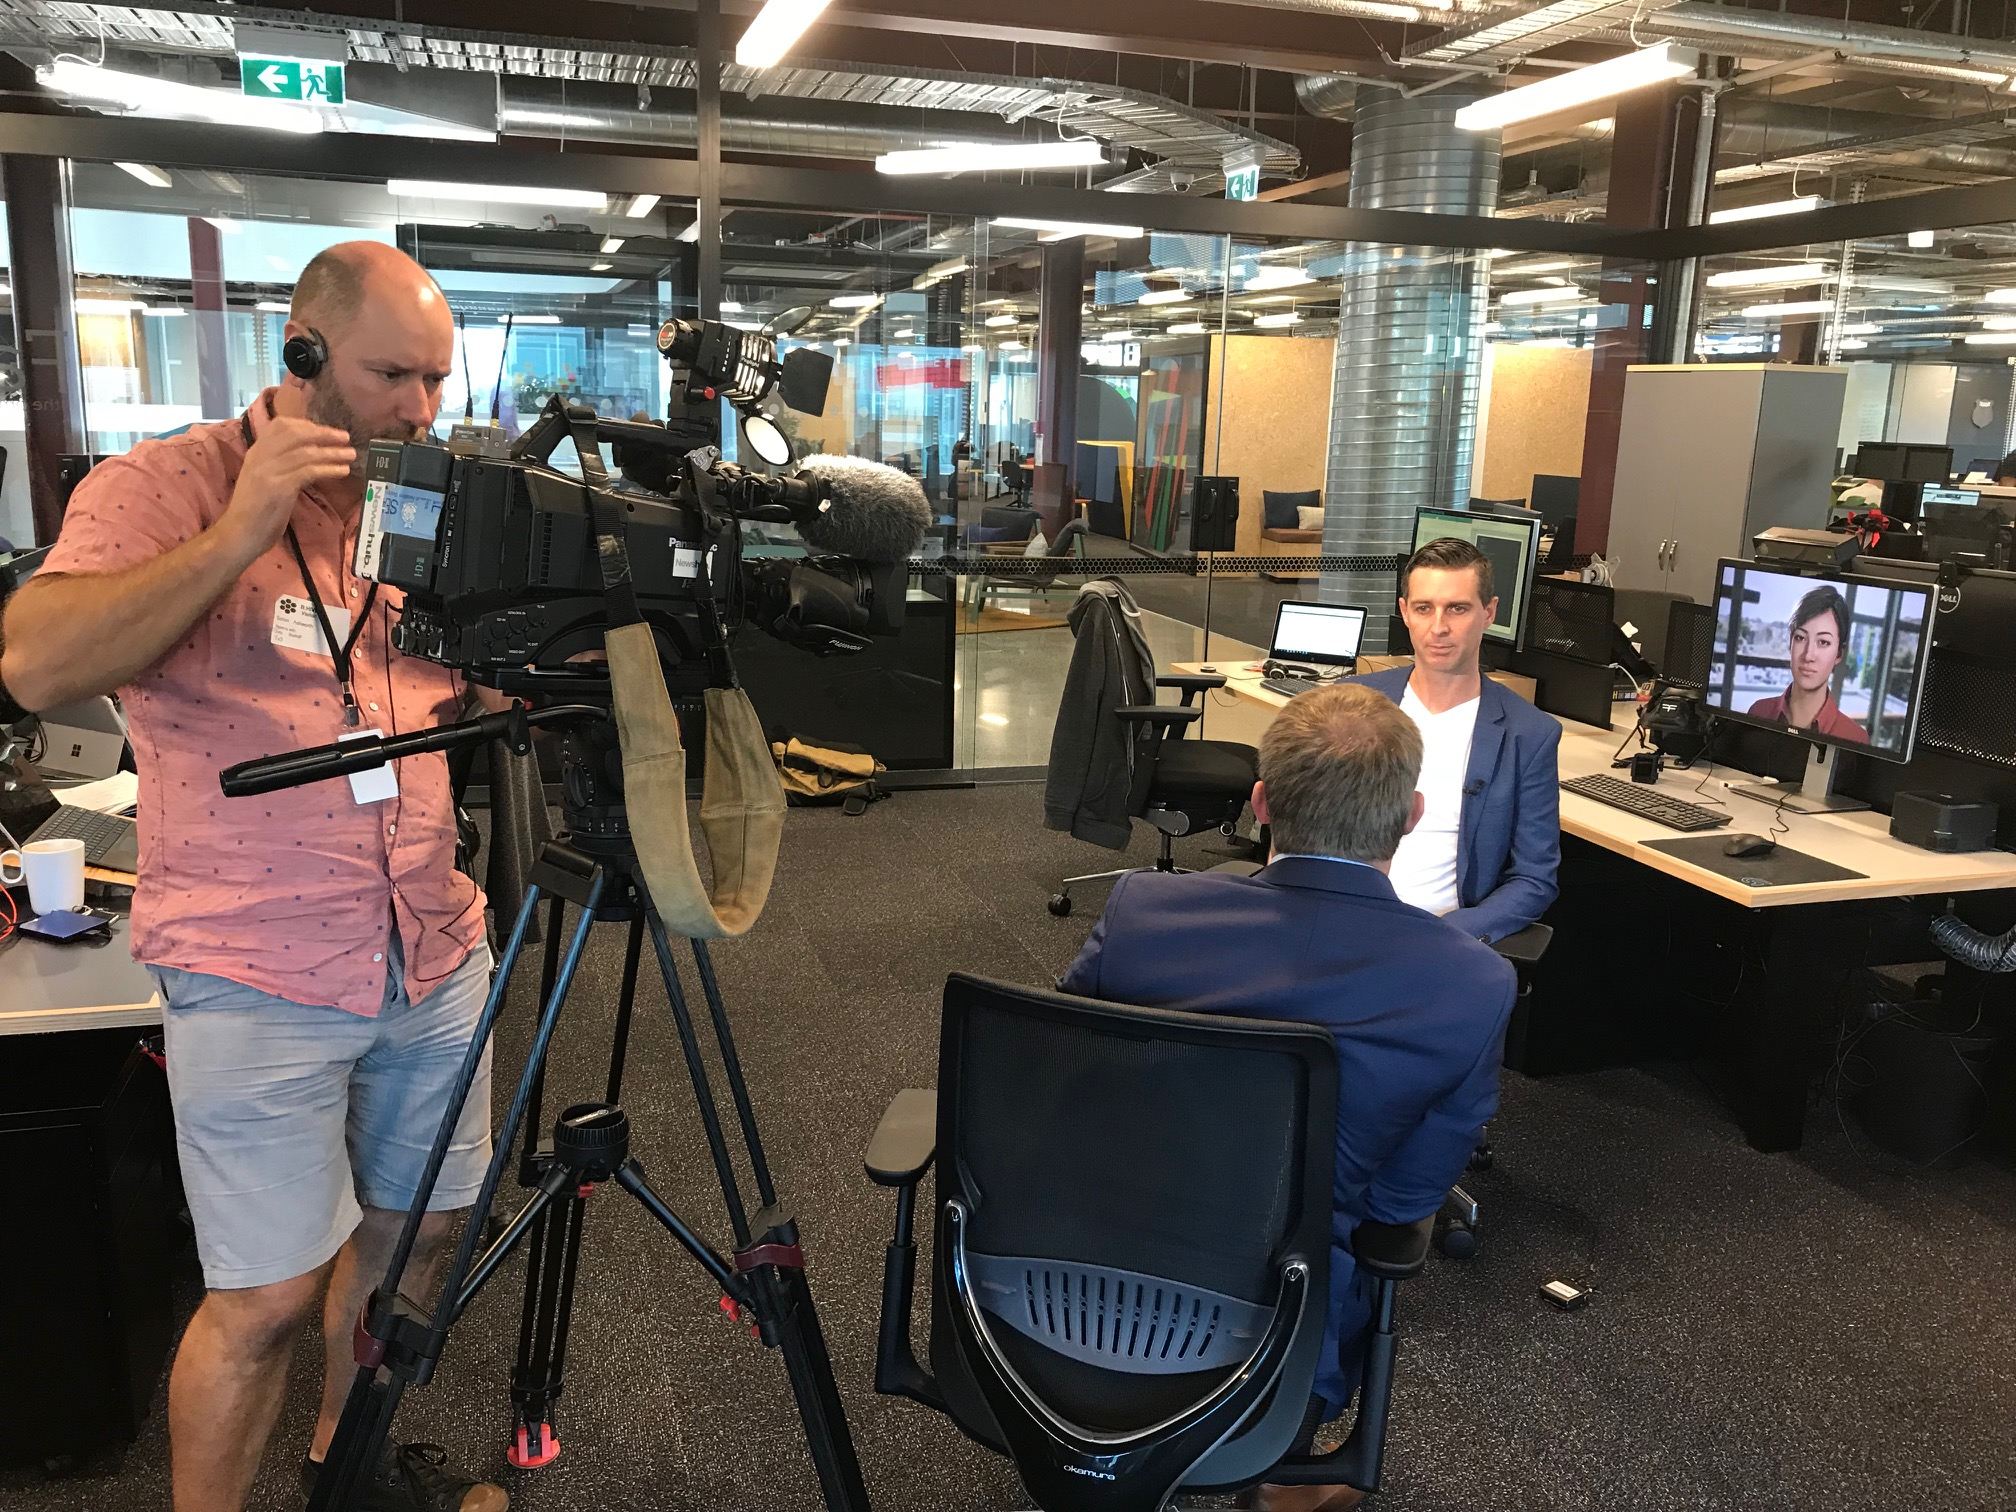 CEO Danny Tomsett being interviewed by Newshub reporter